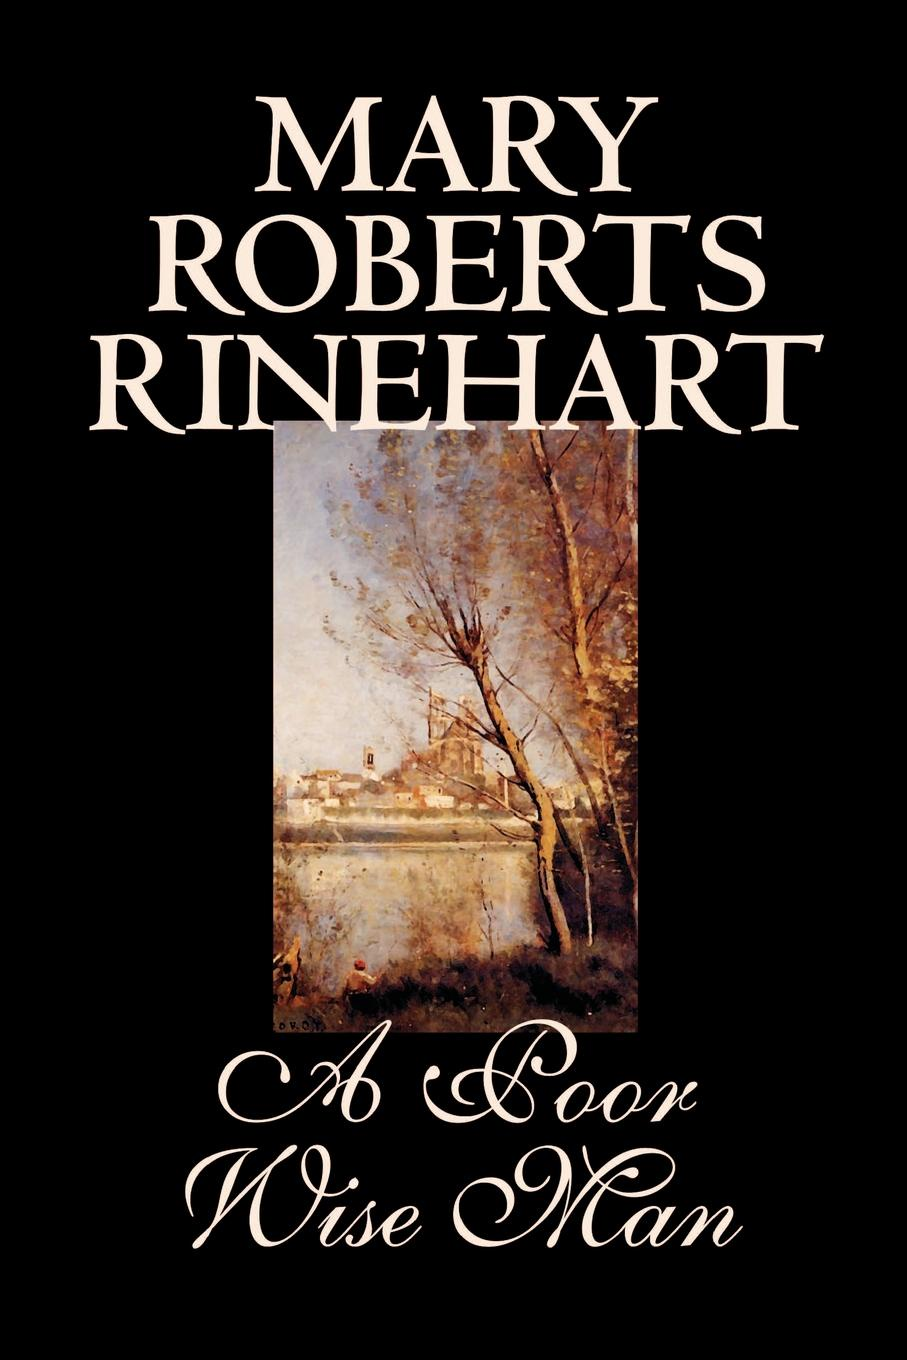 Mary Roberts Rinehart A Poor Wise Man by Mary Roberts Rinehart, Fiction, Classics mary roberts rinehart the man in lower ten